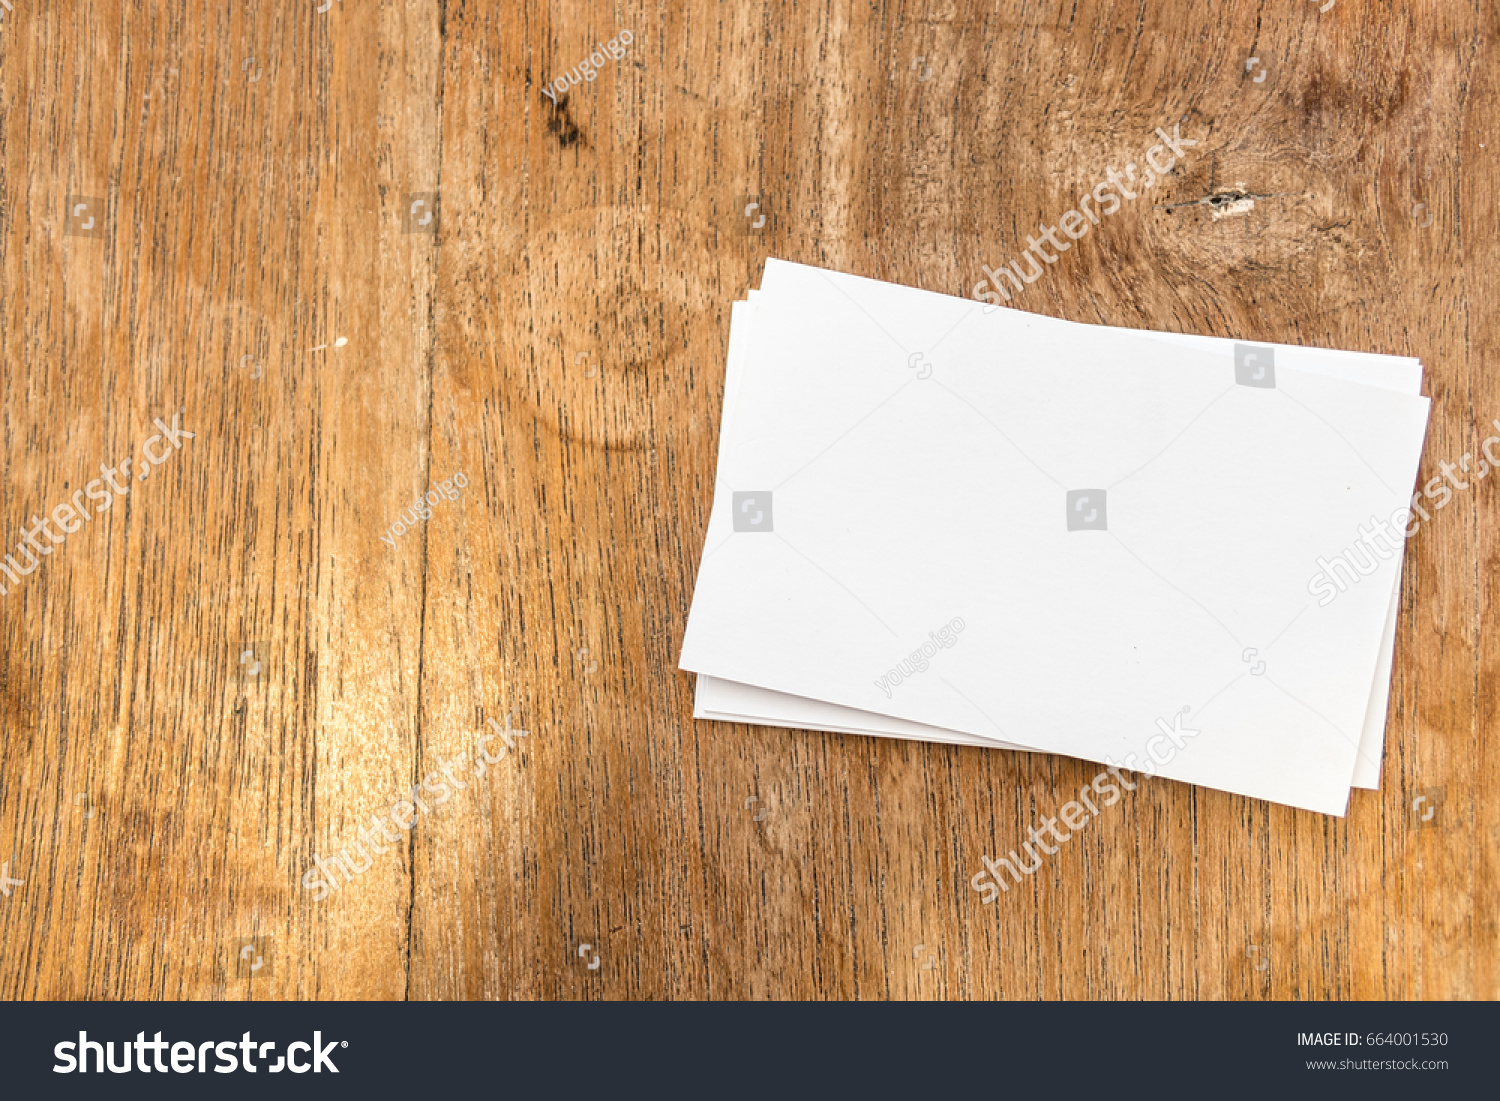 Blank Business Card Professionalwhite Paper Card Stock Photo ...